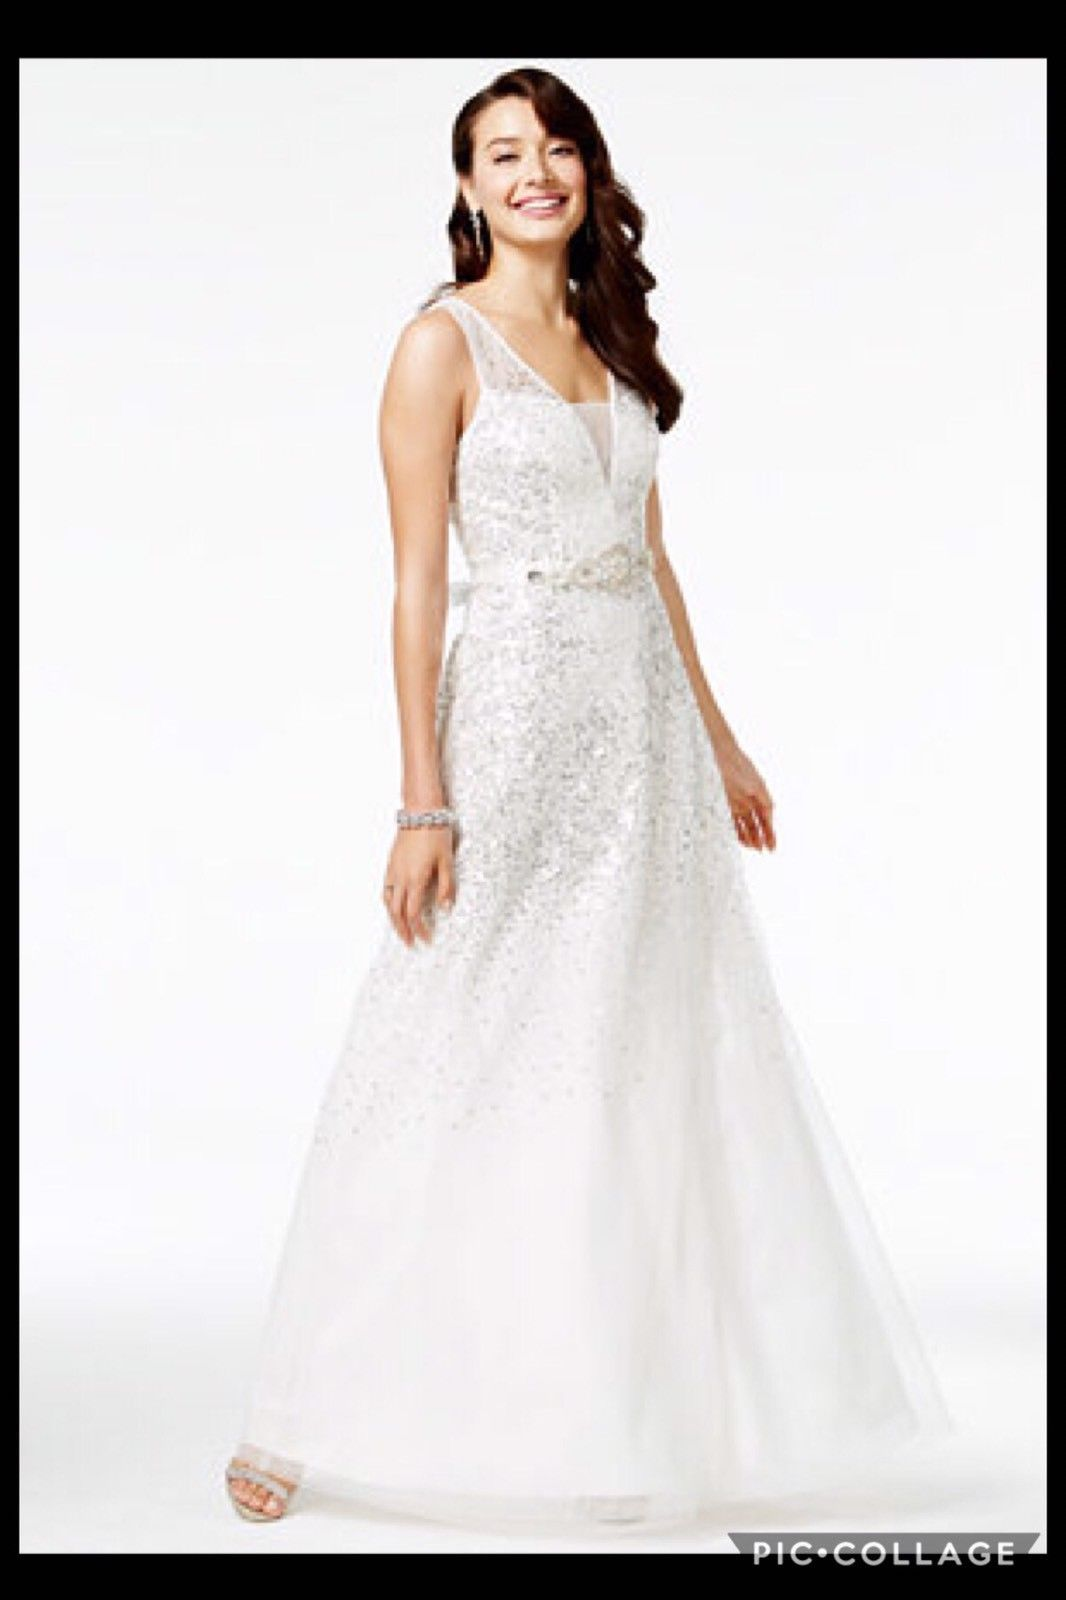 Nice awesome macyus say yes to the prom juniorsu sequined embellish